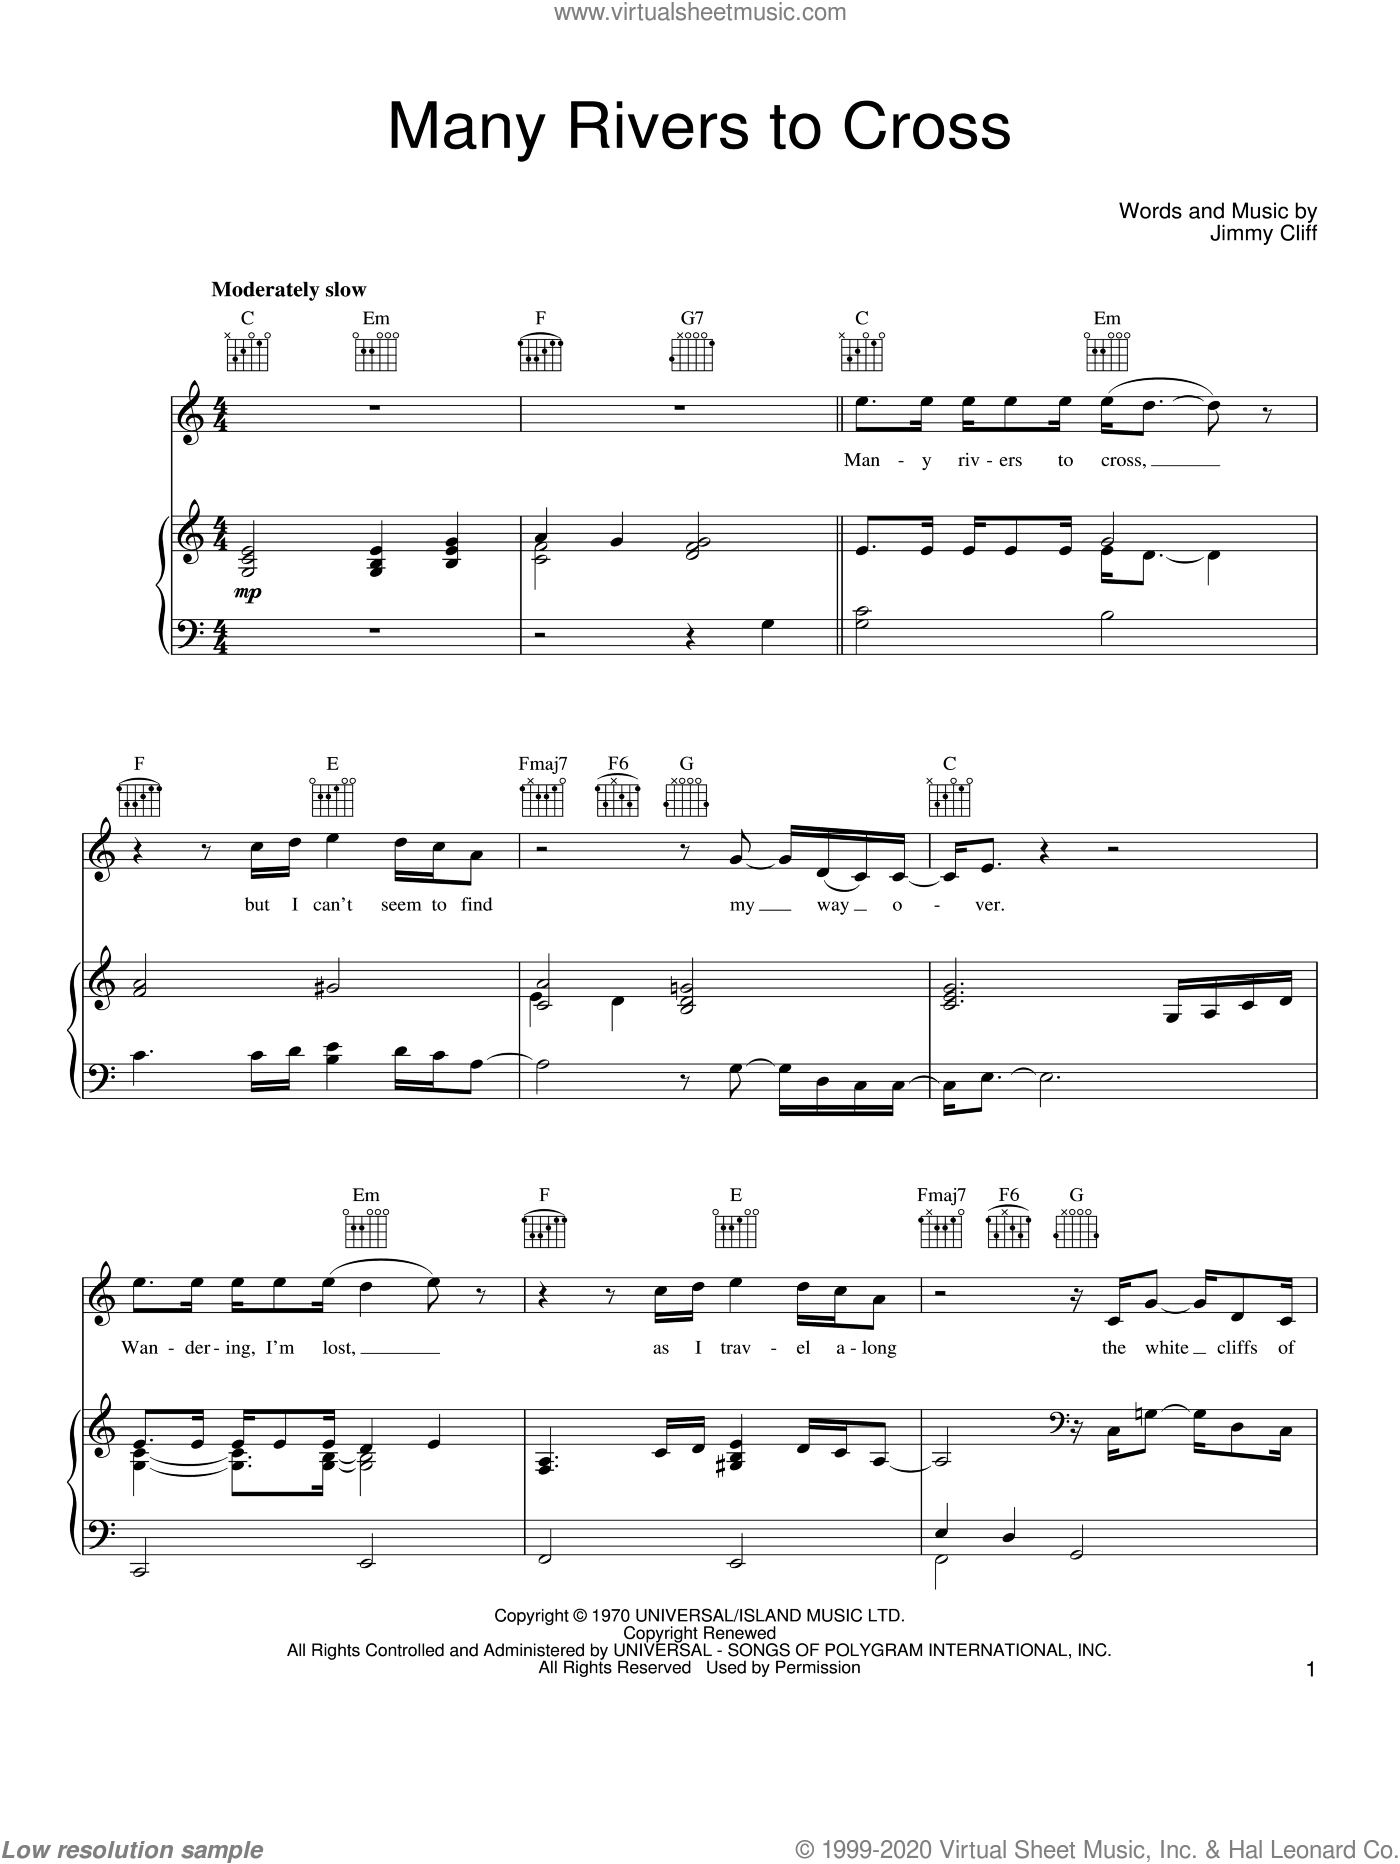 Many Rivers To Cross sheet music for voice, piano or guitar by Joe Cocker